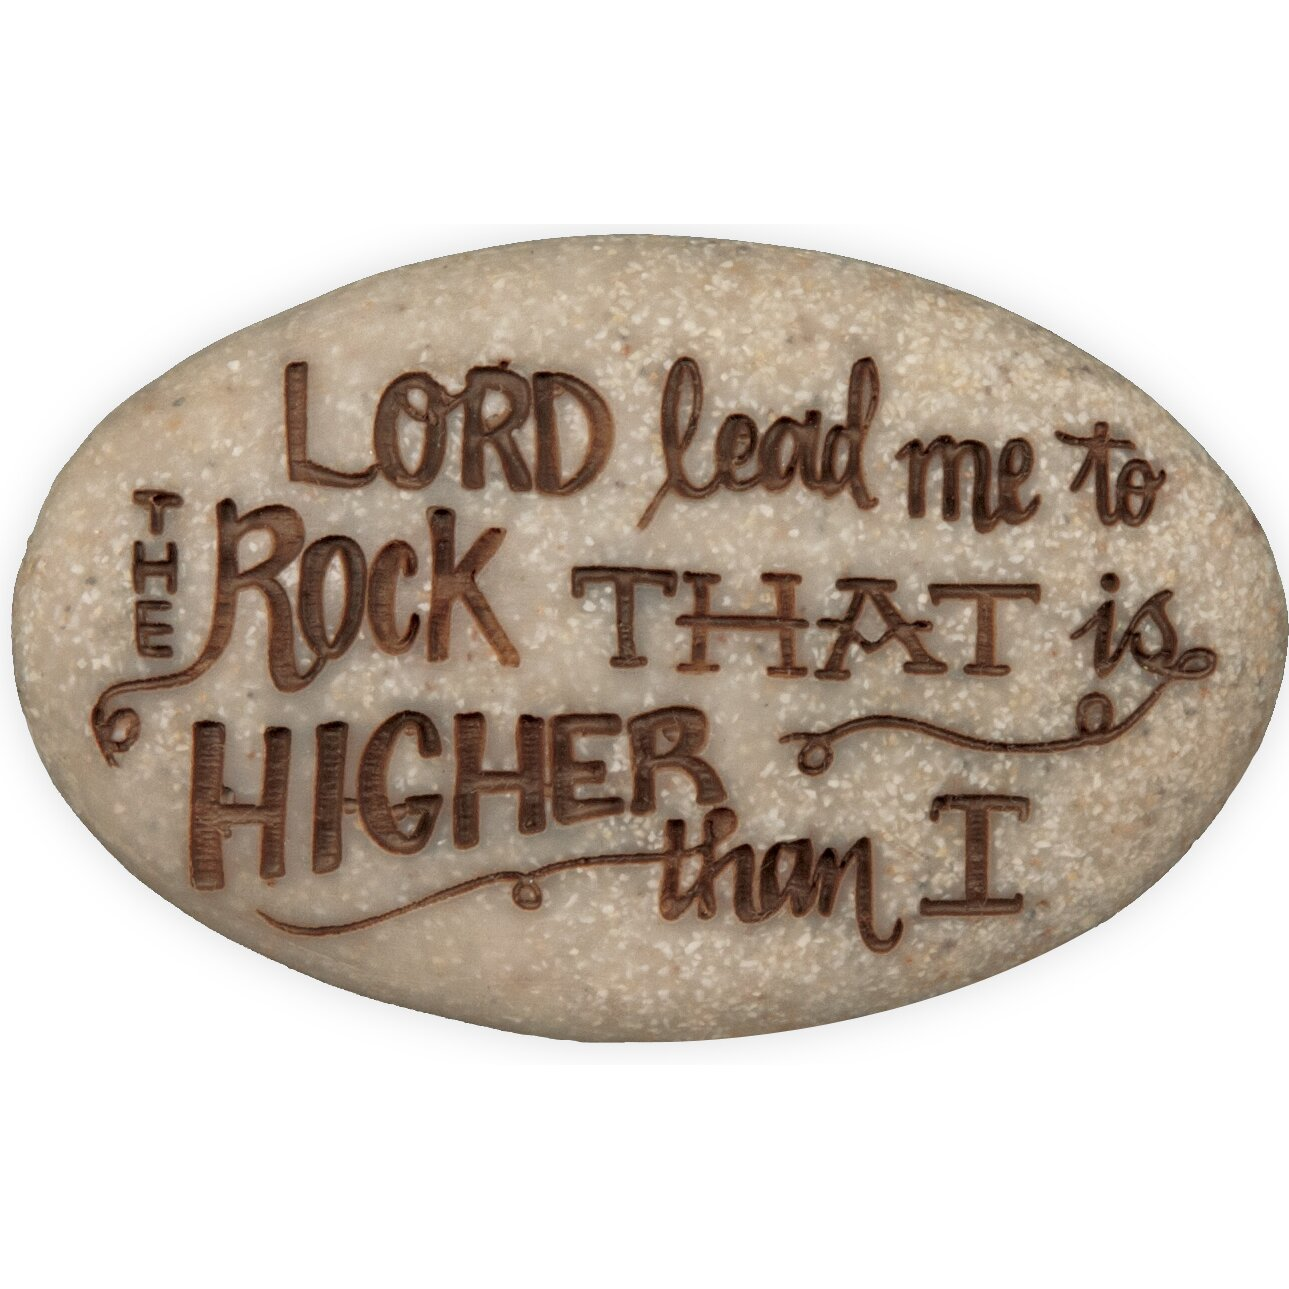 Angelstar psalm 61 2 decorative stone reviews wayfair for Decorative rocks for sale near me